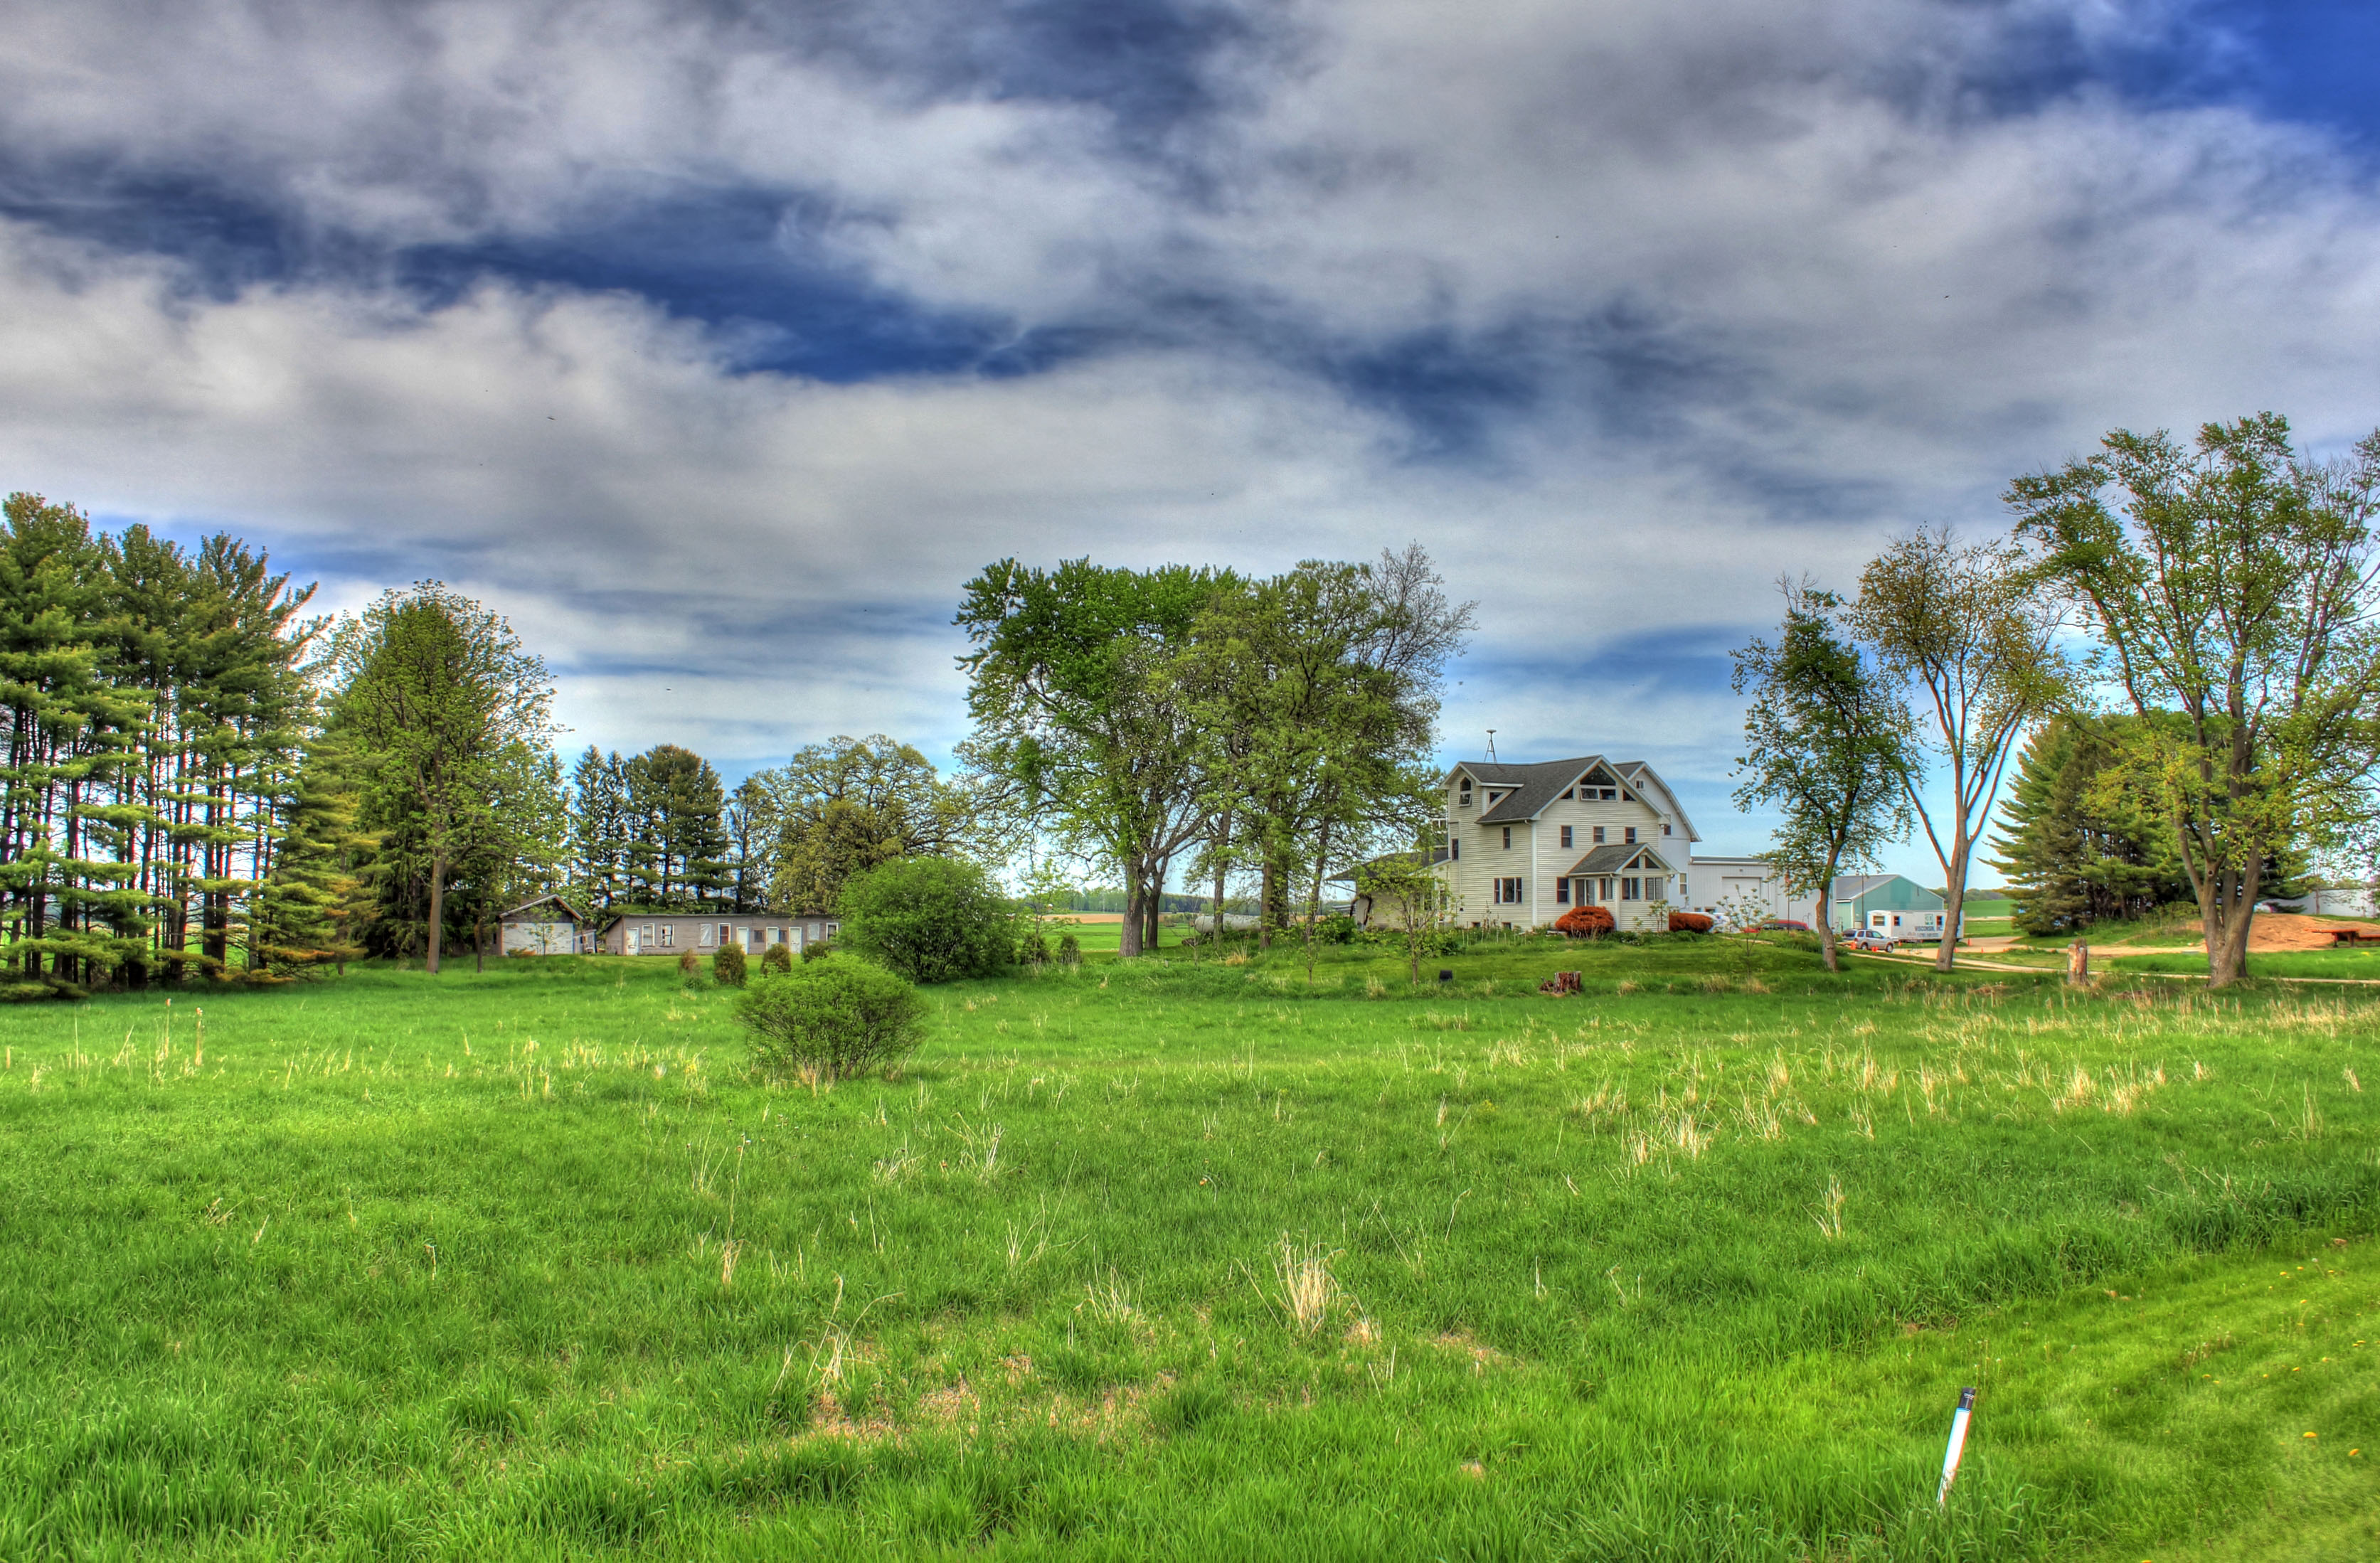 Landscape Houses file:gfp-southern-wisconsin-landscape-blue-sky-and-houses